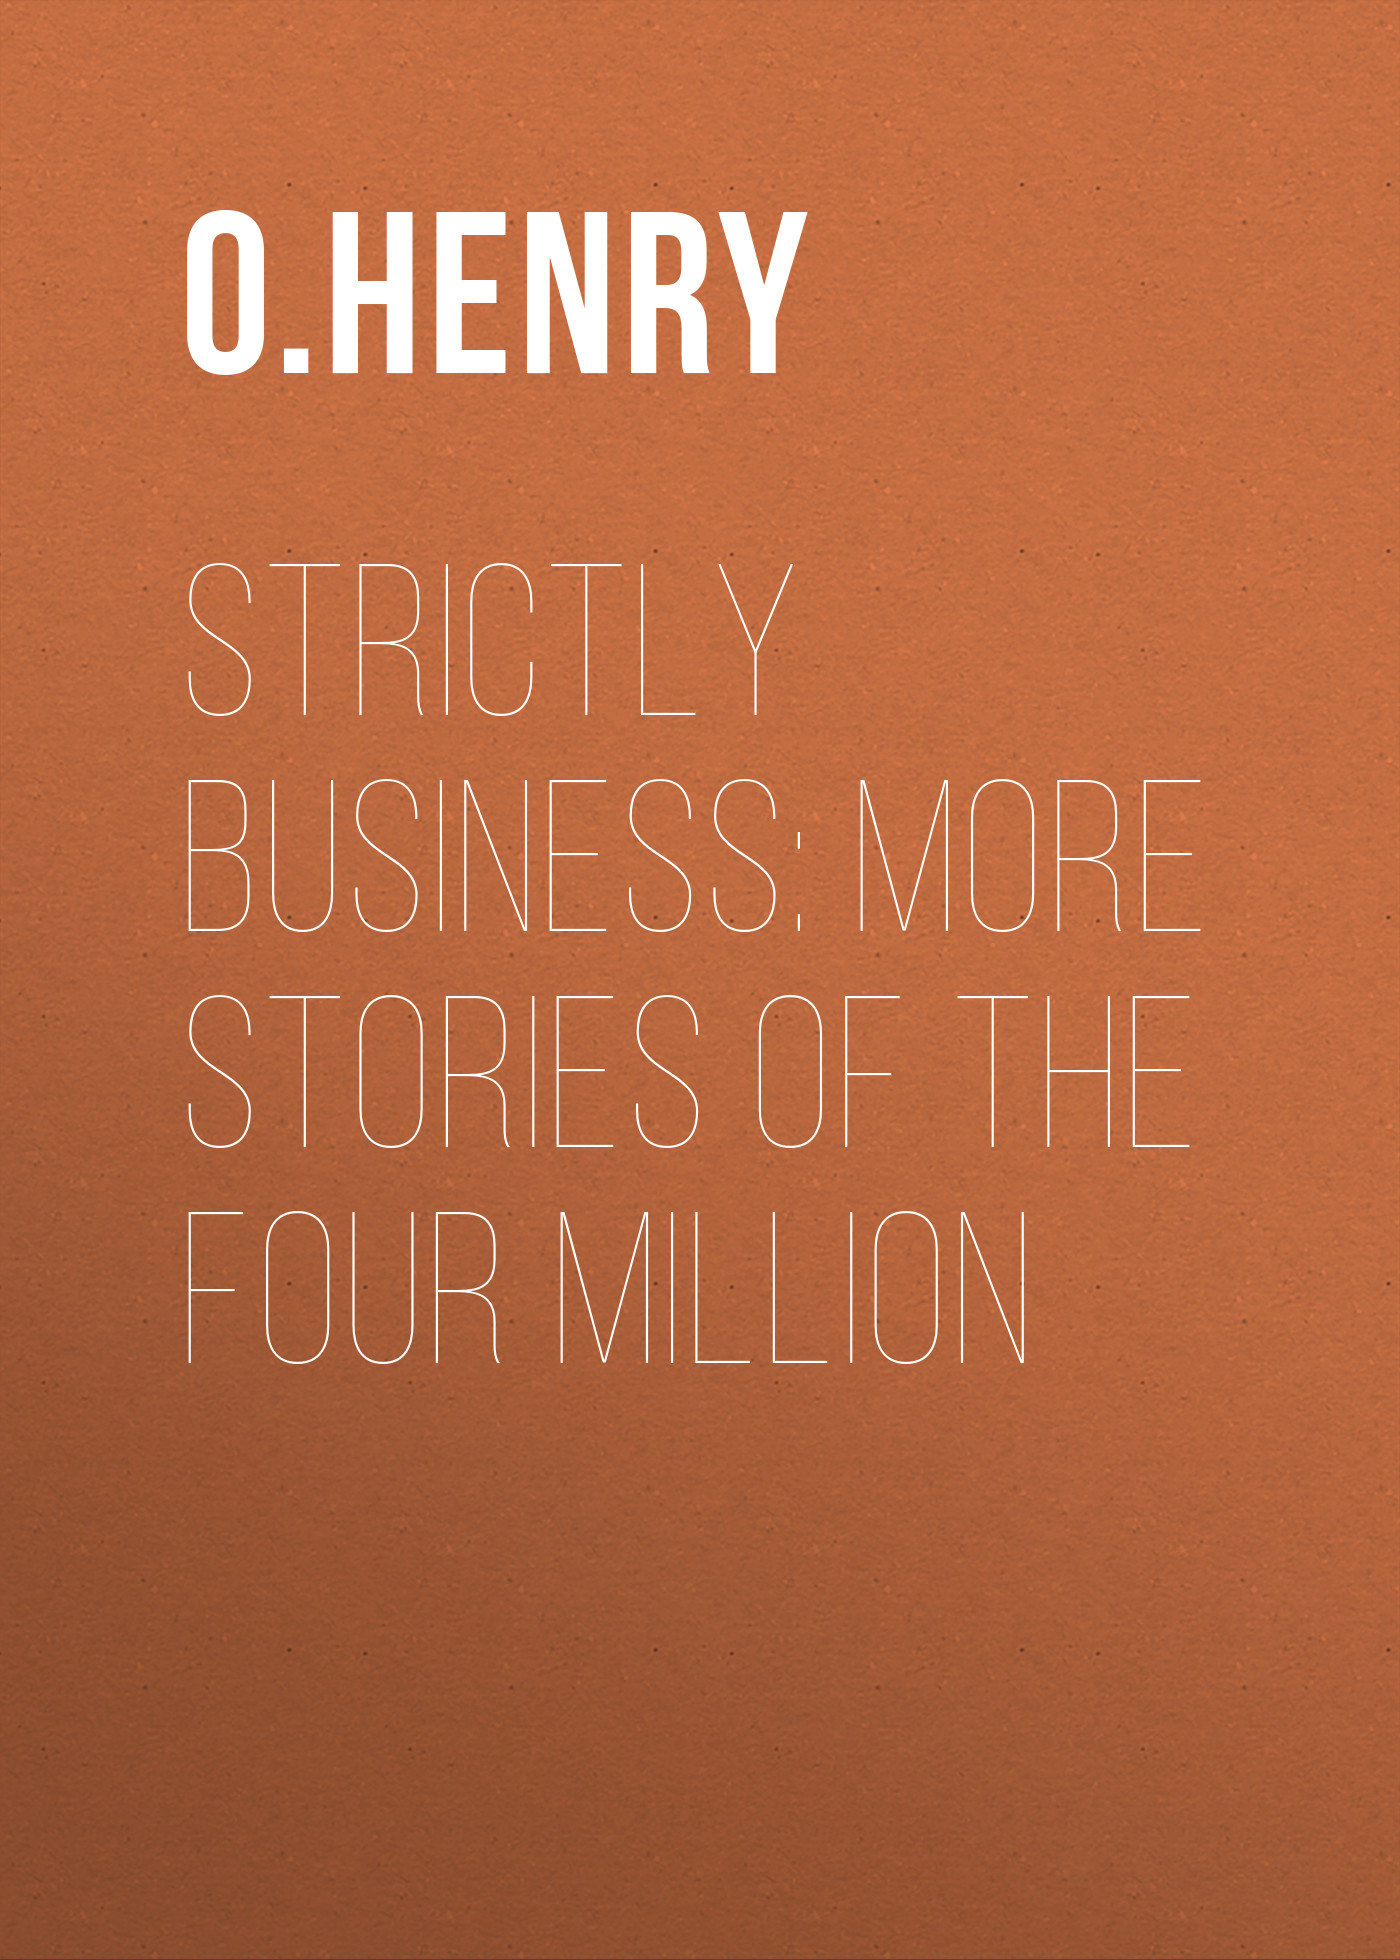 О. Генри Strictly Business: More Stories of the Four Million o henry strictly business